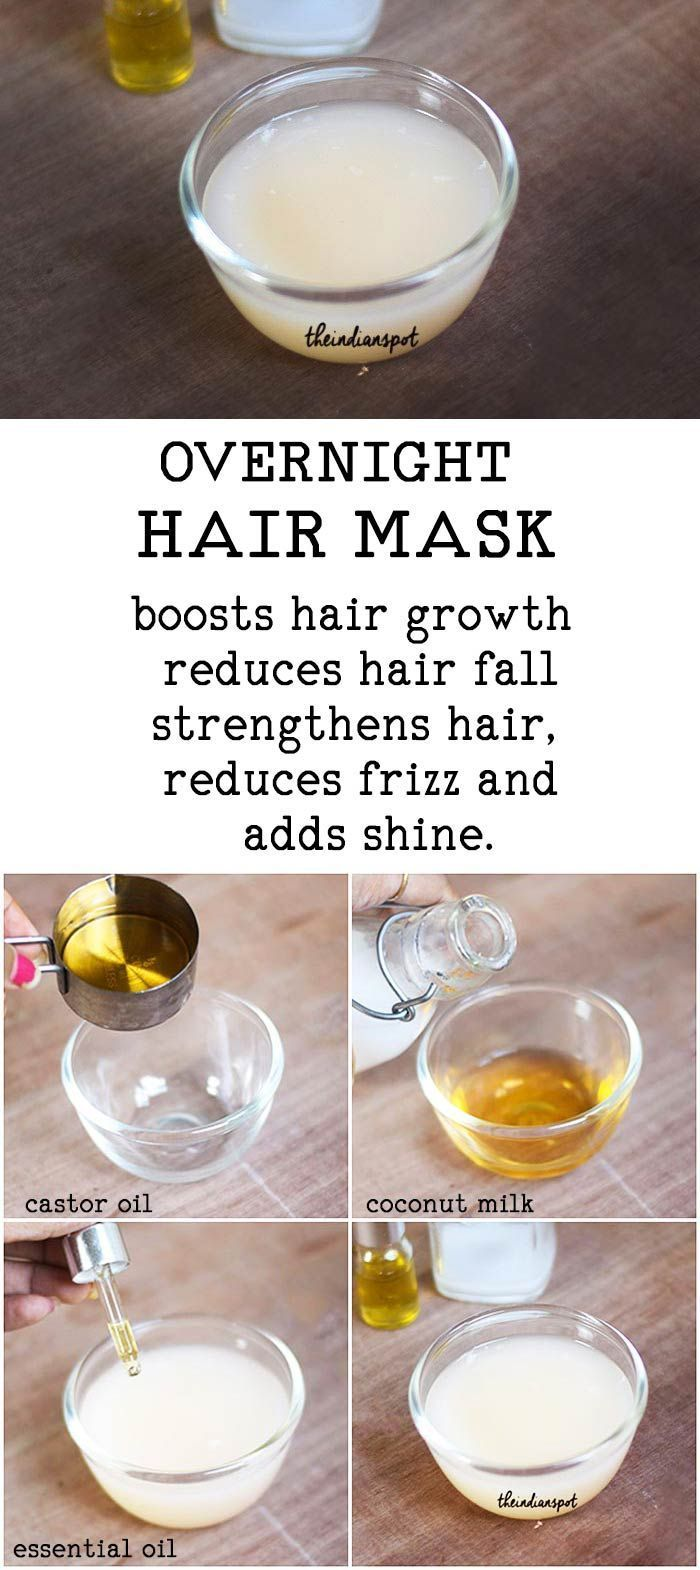 Best Of Diy Deep Conditioning Hair Mask Amazing Design Overnight Hair Mask Deep Conditioning Hair Diy Deep Conditioning Hair Mask